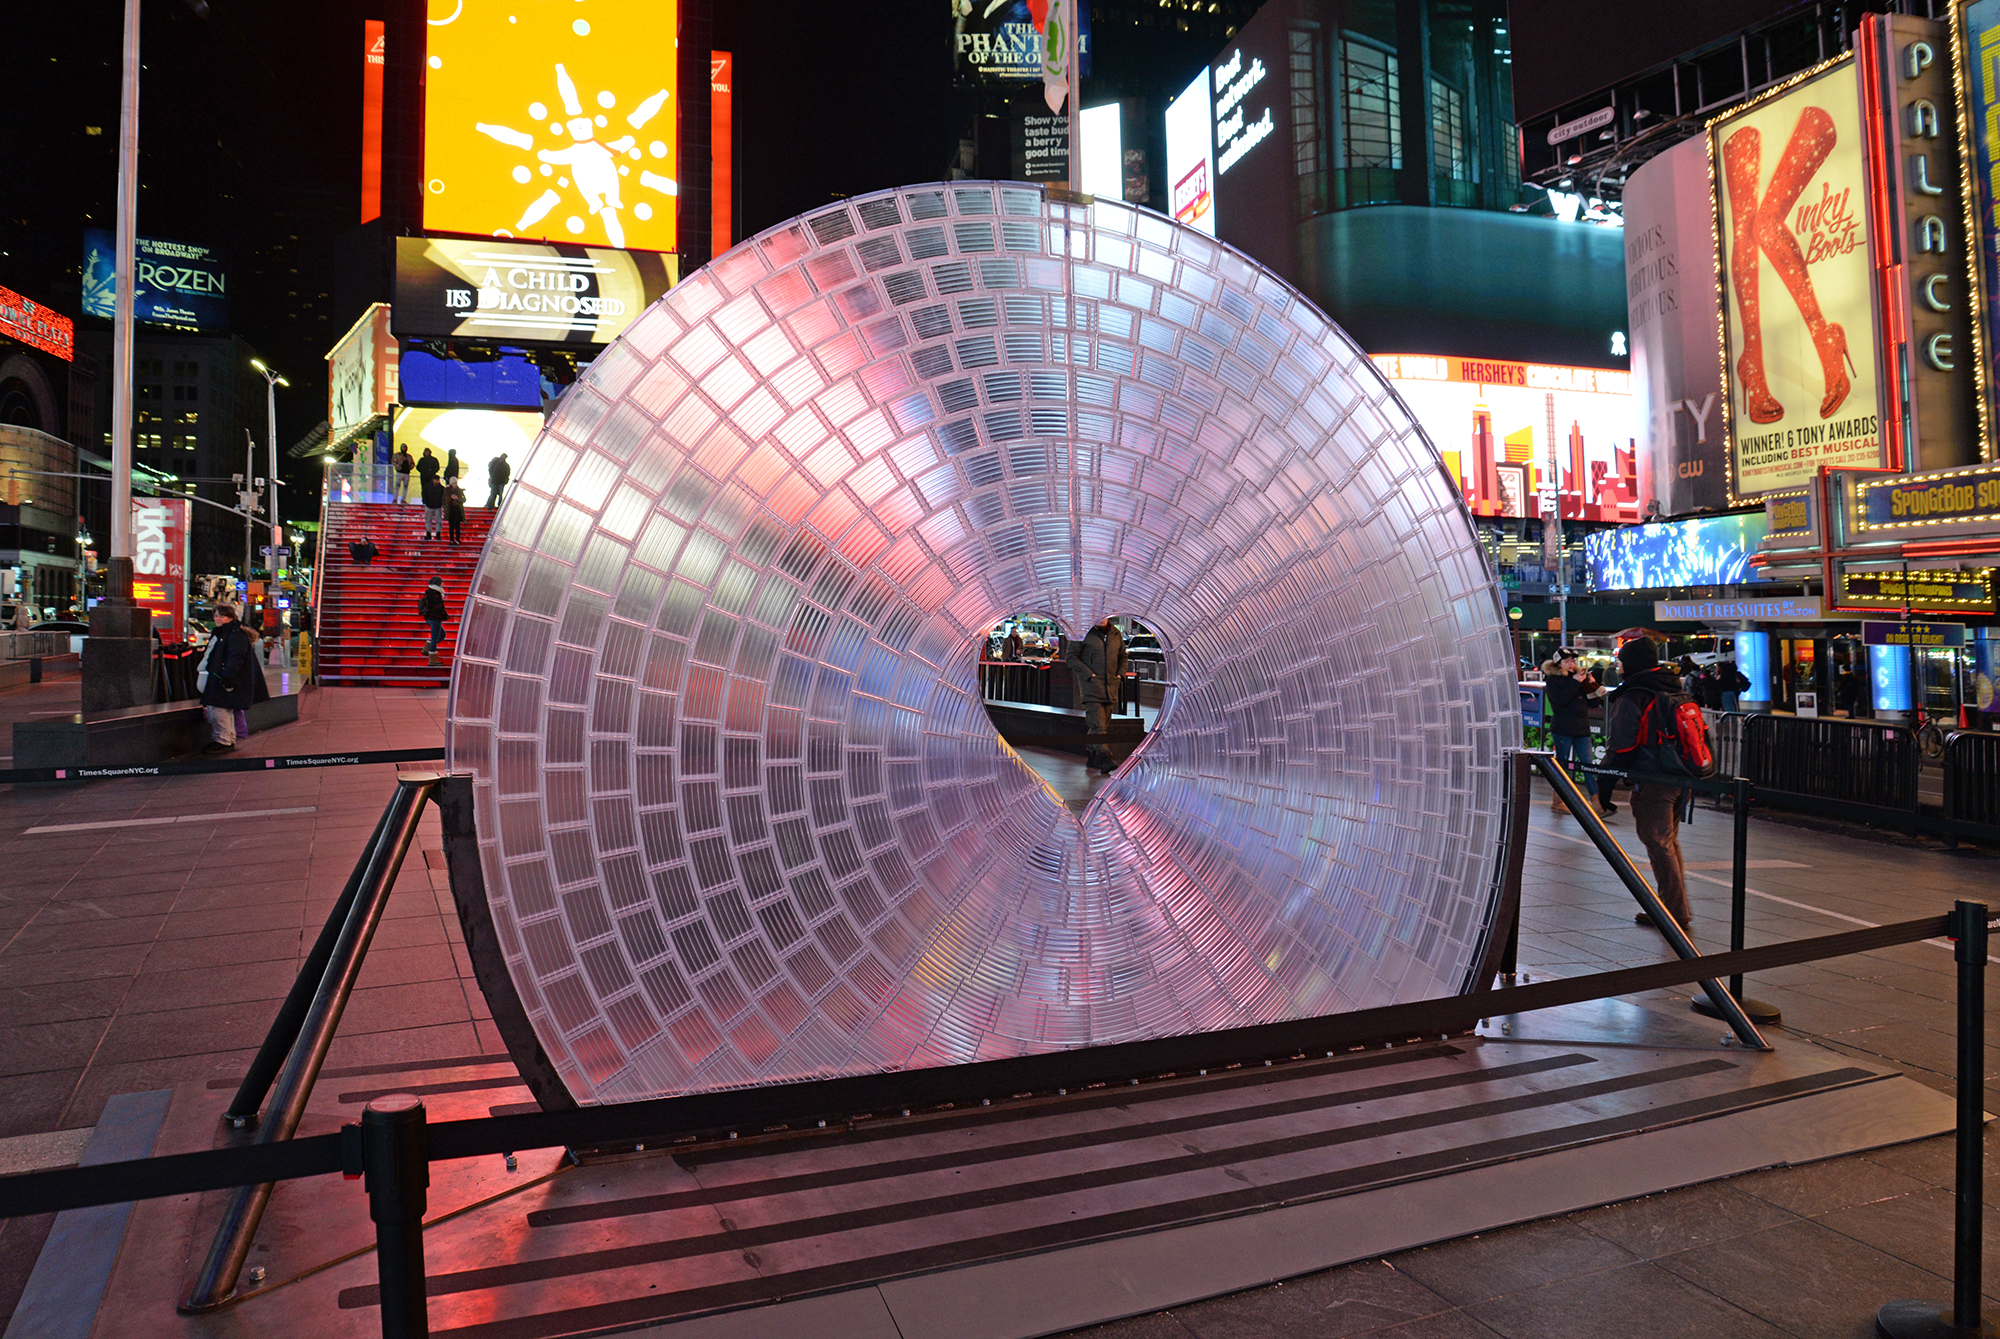 Window to the Heart, a large 3D printed Fresnel lens made of 3D printed bricks, sits in Times Square.